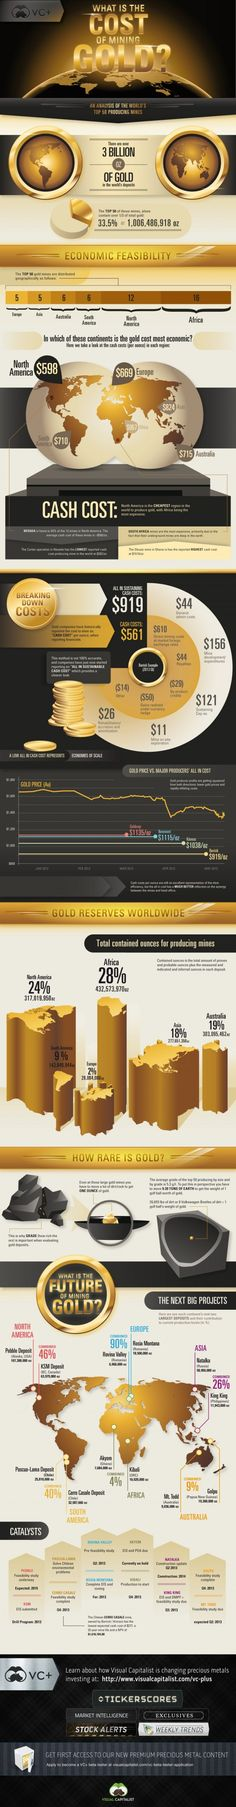 #Gold #Mining #GoldMiningCost : Daily Infographic | What is the Cost of Mining Gold? [Infographic] -